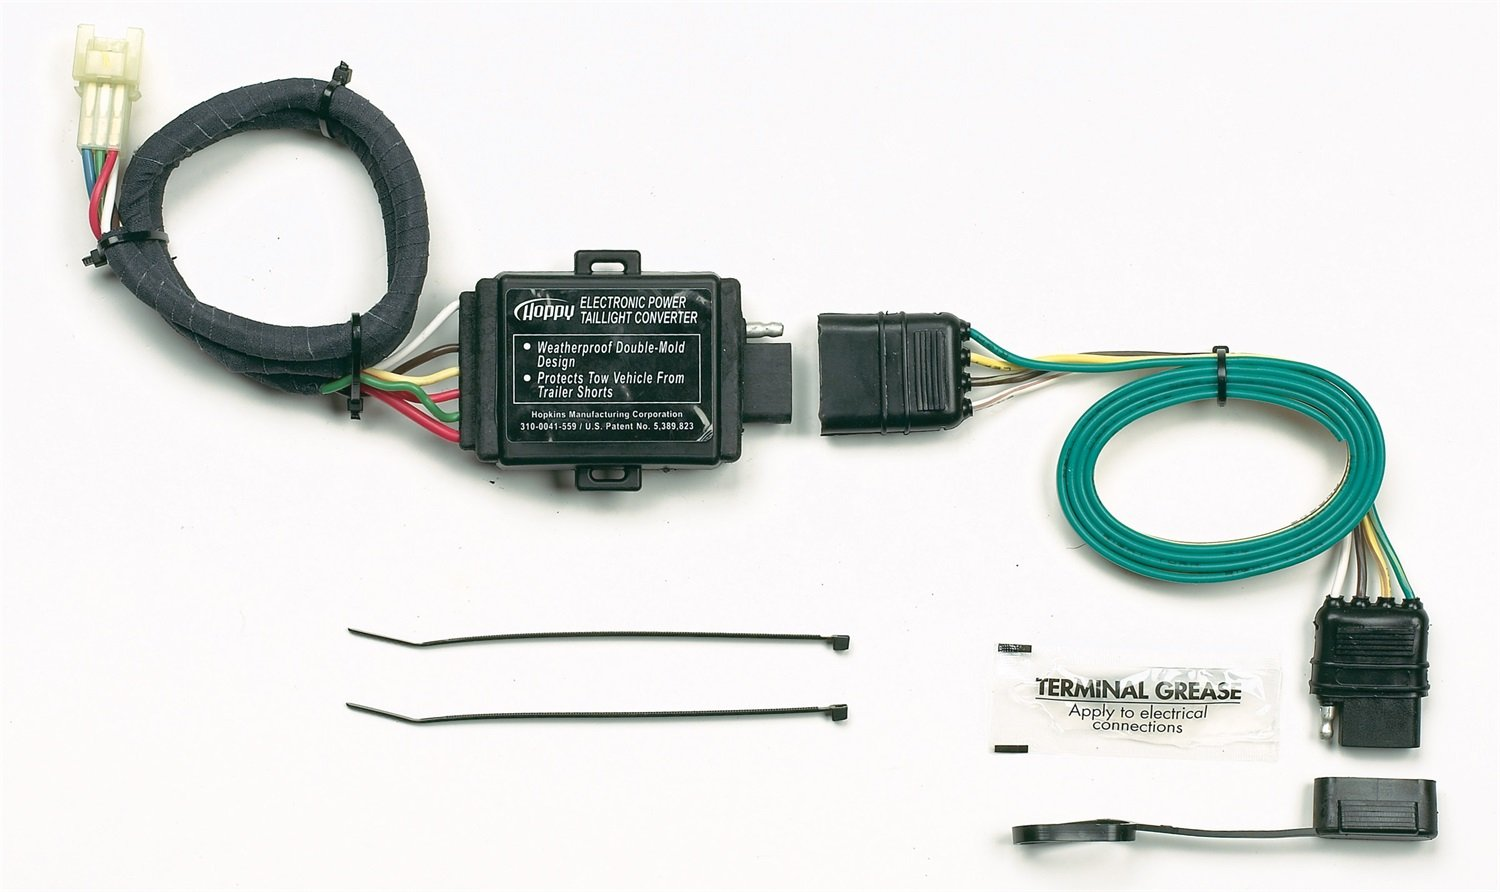 61vyuCKHFzL._SL1500_ amazon com hopkins 43855 plug in simple vehicle wiring kit hoppy wiring harness at crackthecode.co